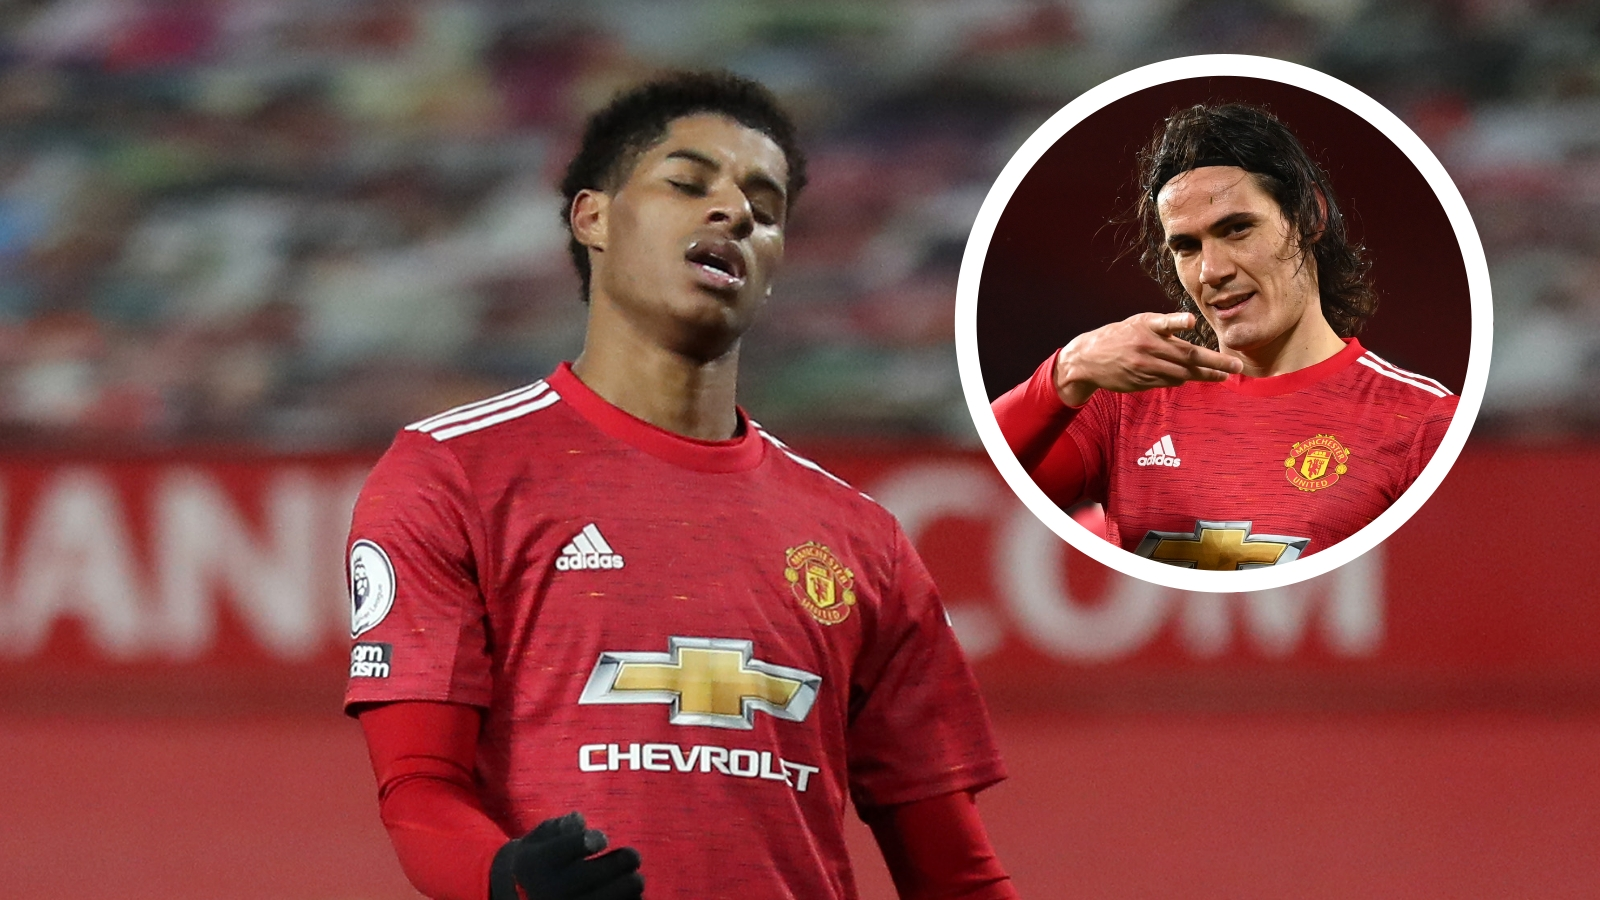 'Rashford won't be a clinical centre-forward like Cavani' – Man Utd striker can't be relied upon to get 20 goals, says Cole